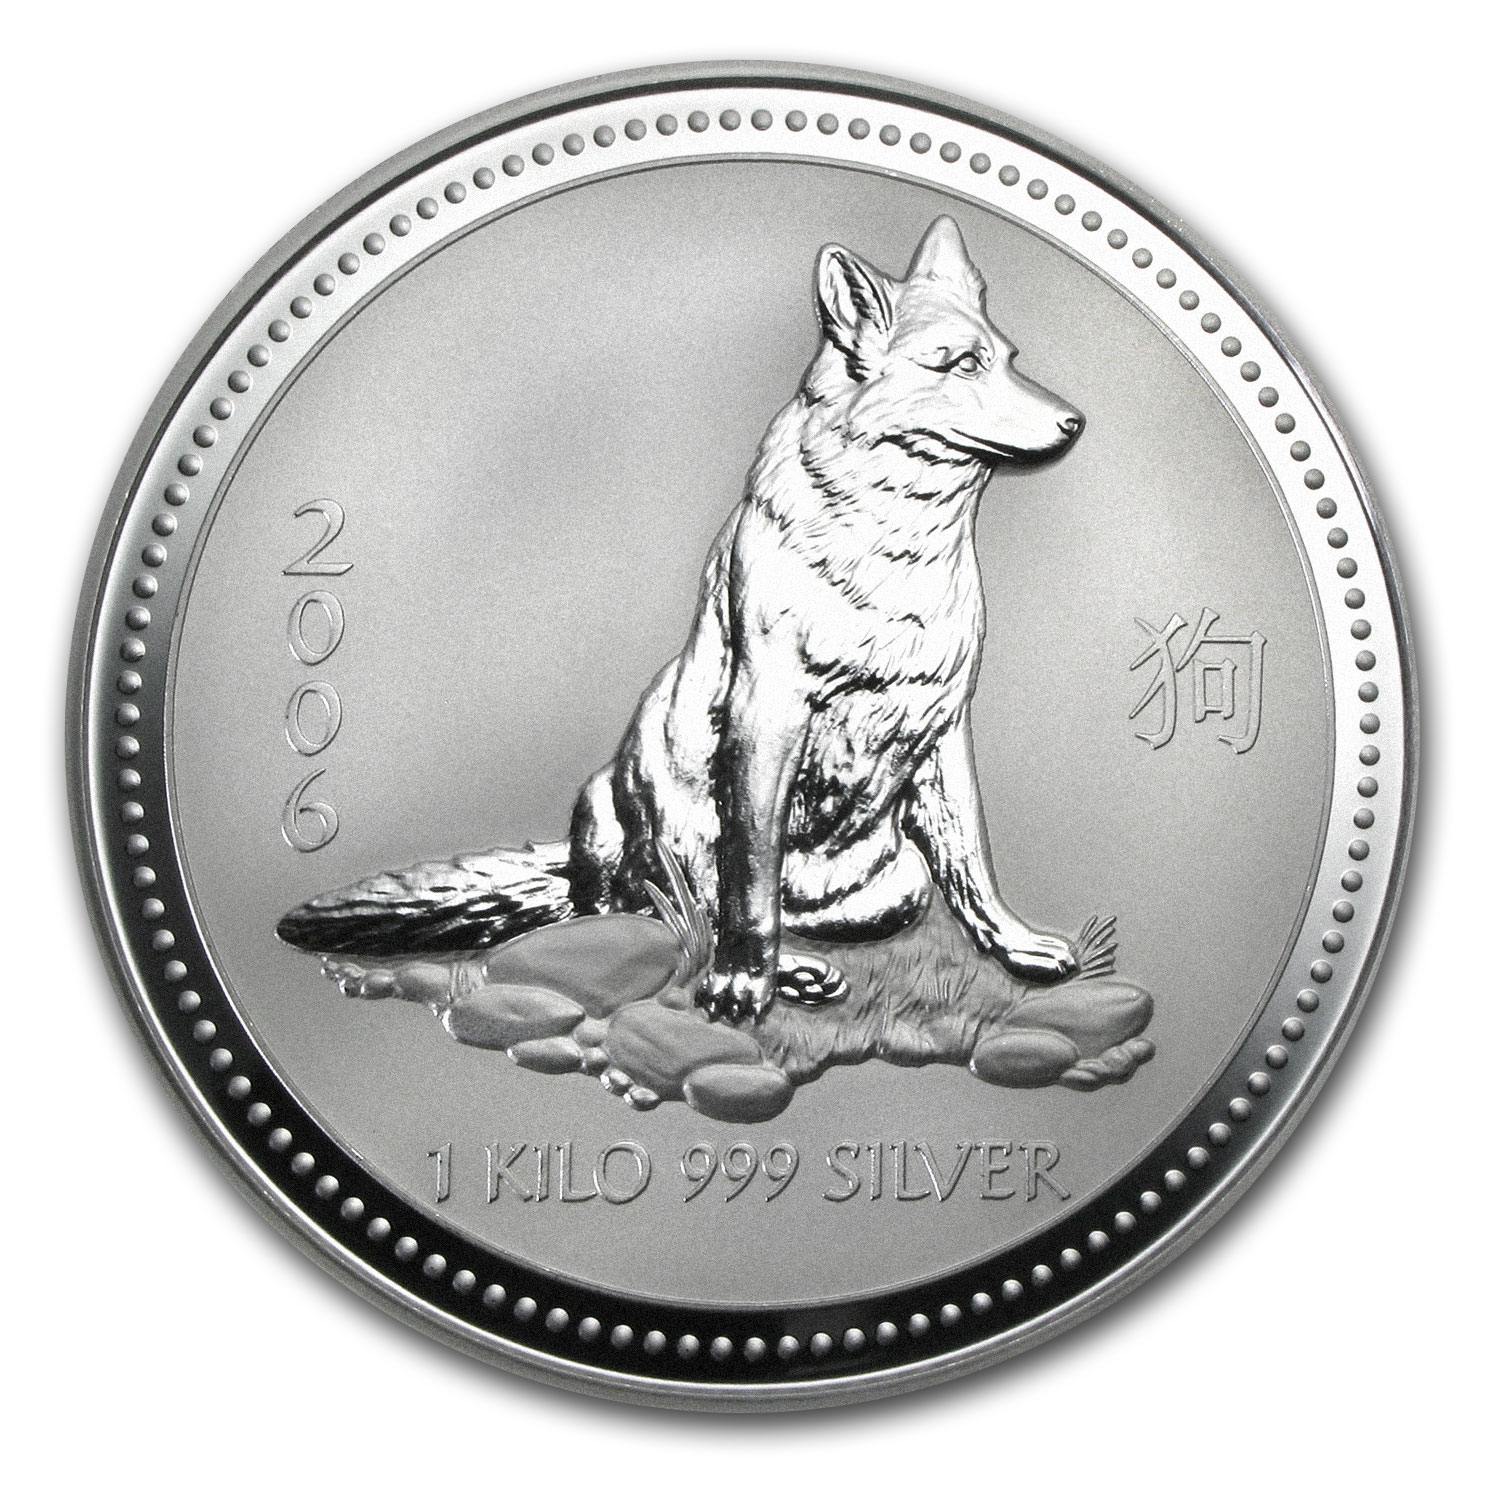 2006 1 kilo Silver Lunar Year of the Dog (Series I)